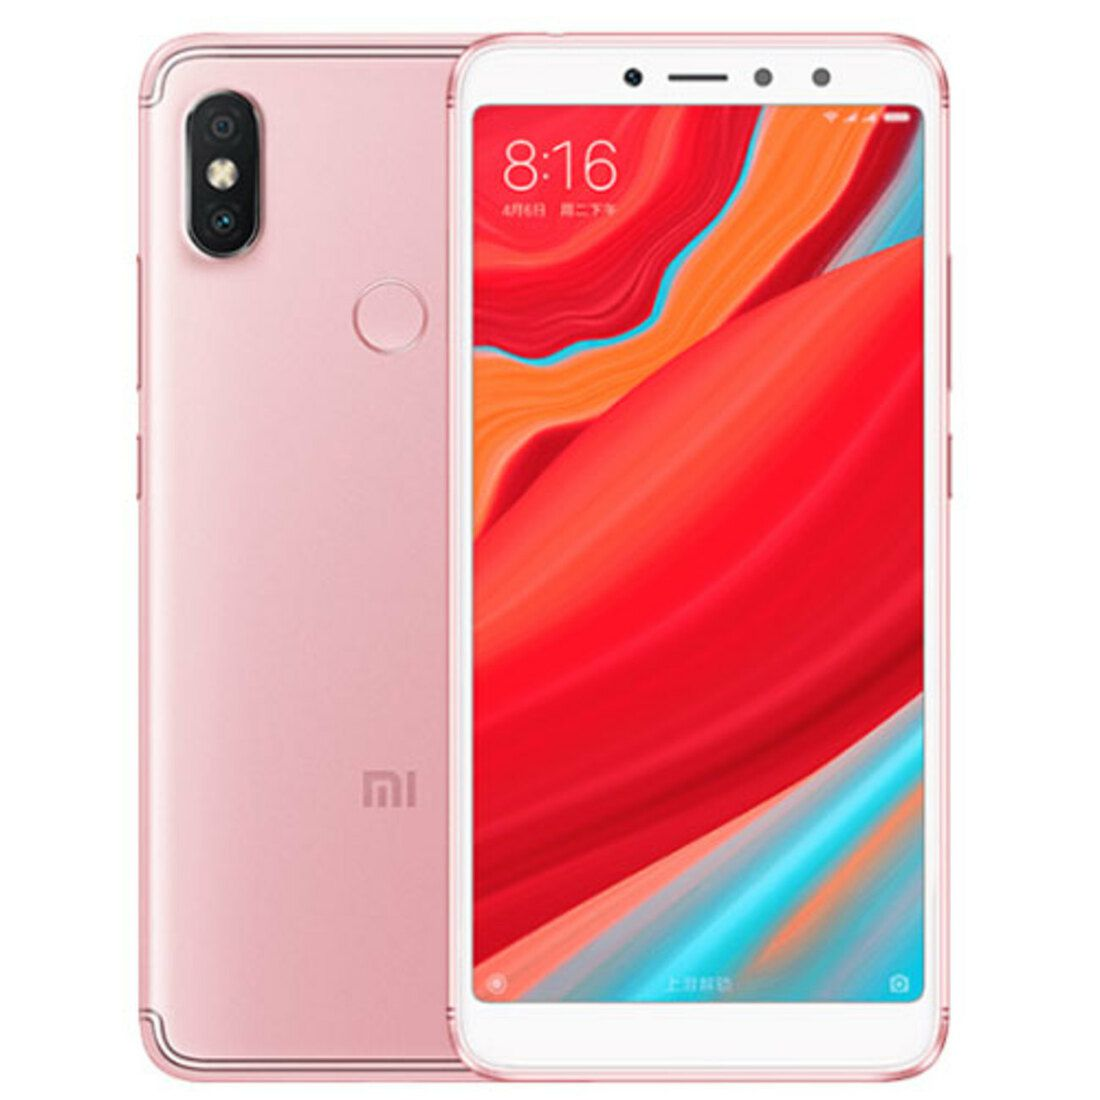 Smartphone Redmi S2 4GB Ram Tela 5.99 64GB Camera dupla 12+5MP - Rose  - PAGDEPOIS